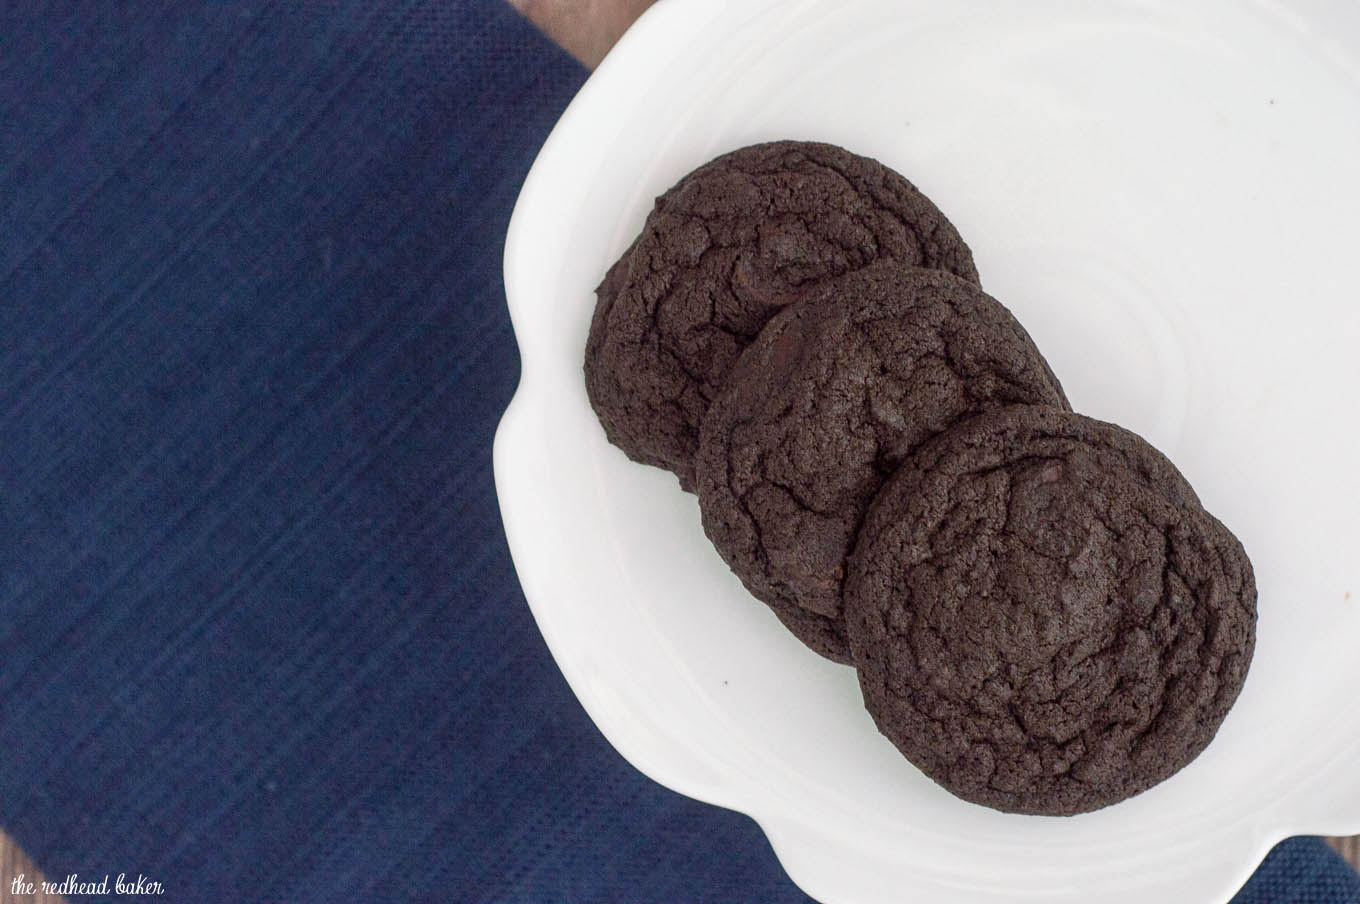 Chocolate espresso cookies are rich and fudgy. Espresso powder enriches the flavor of the chocolate and adds coffee flavor, too. #Choctoberfest